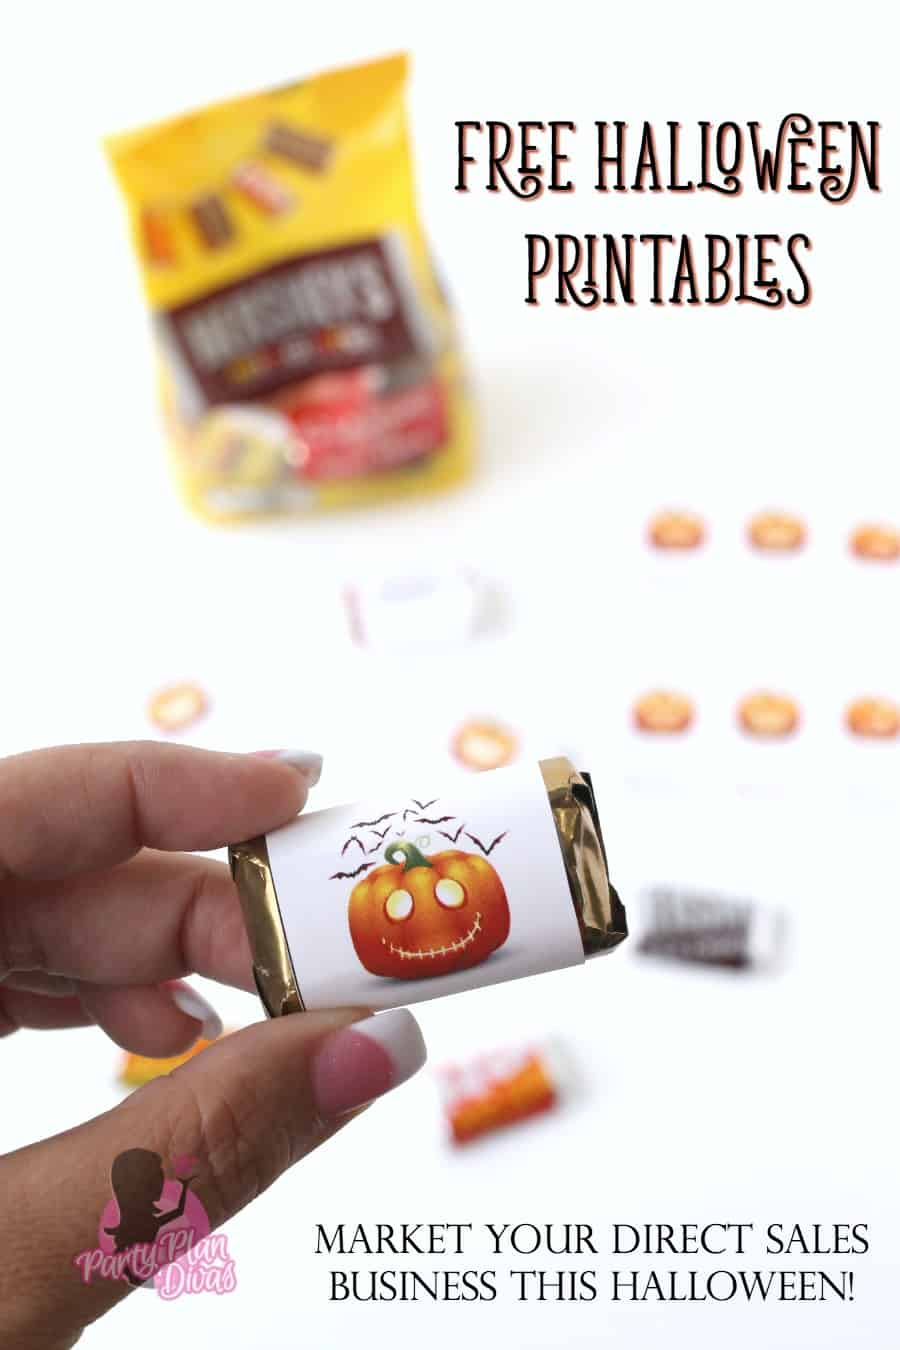 Free Halloween Printable For Your Direct Sales Business